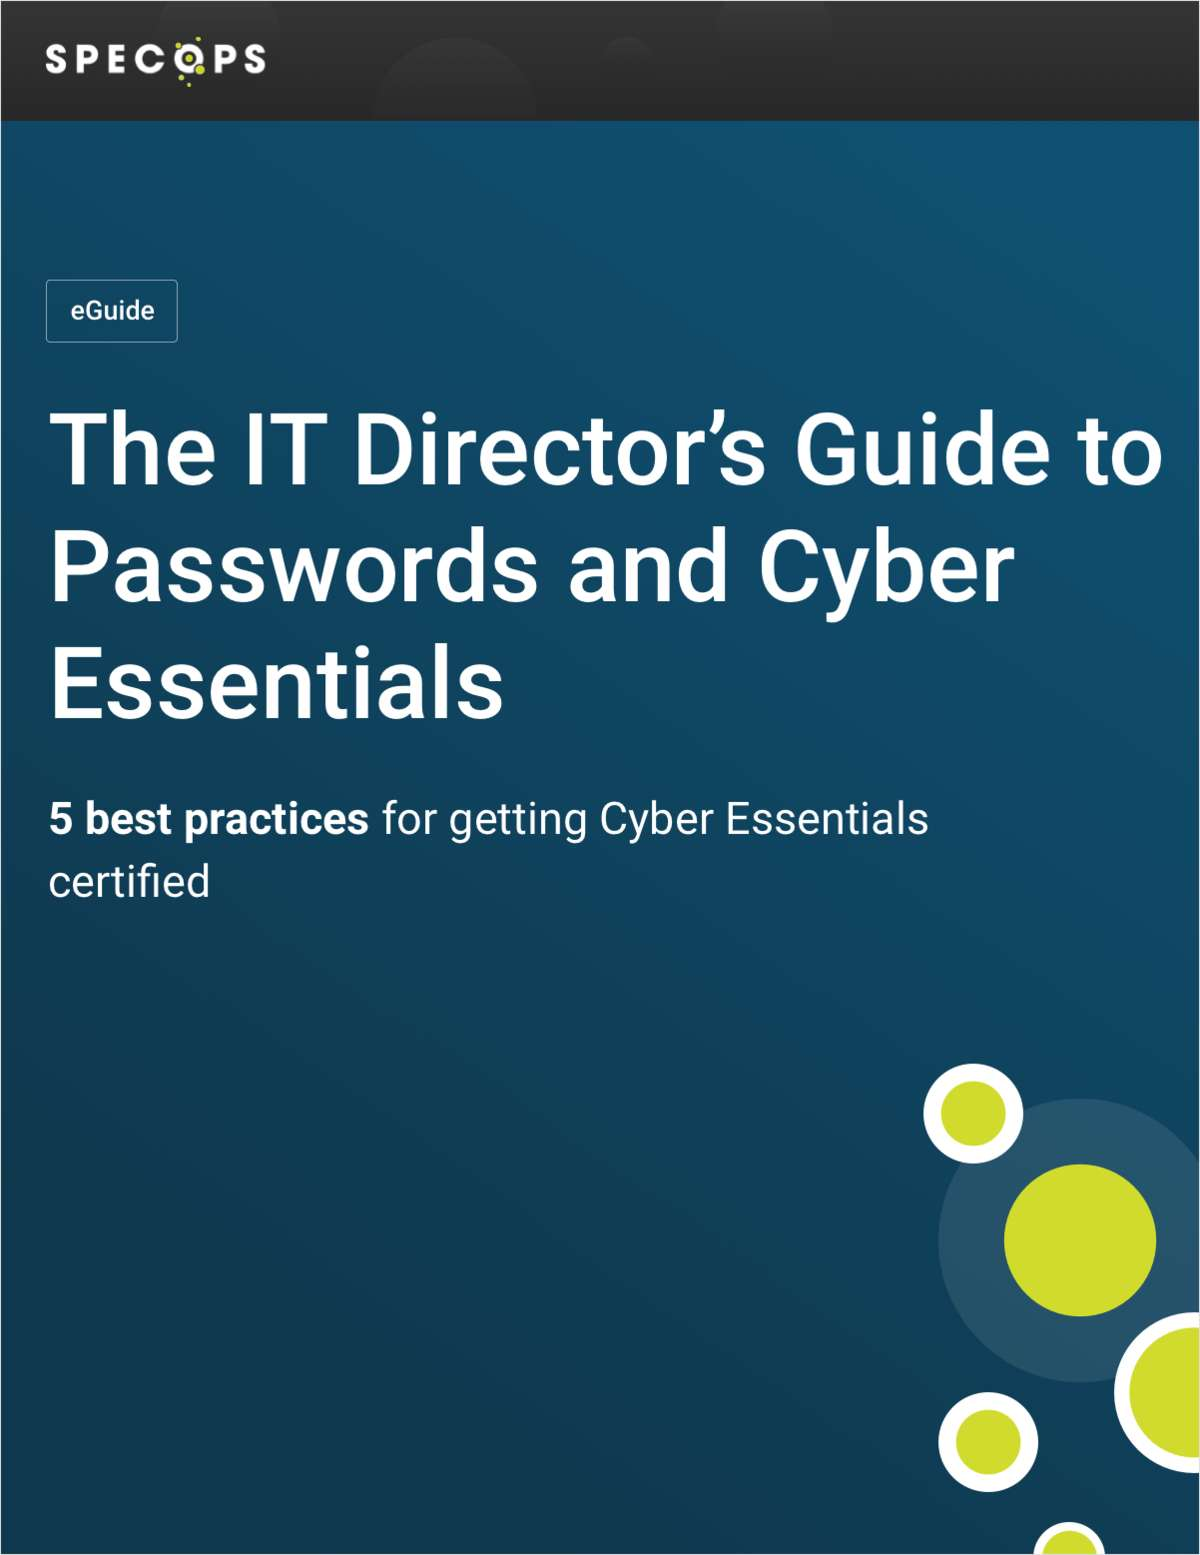 The IT Director's Guide to Passwords and Cyber Essentials